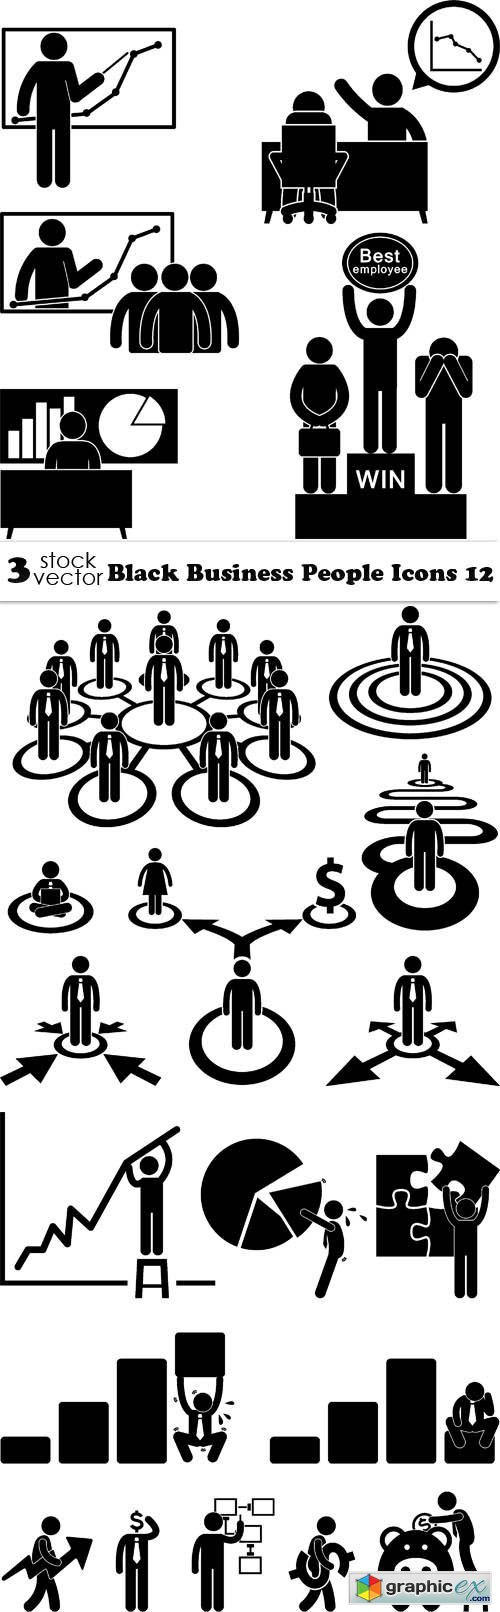 Black Business People Icons 12